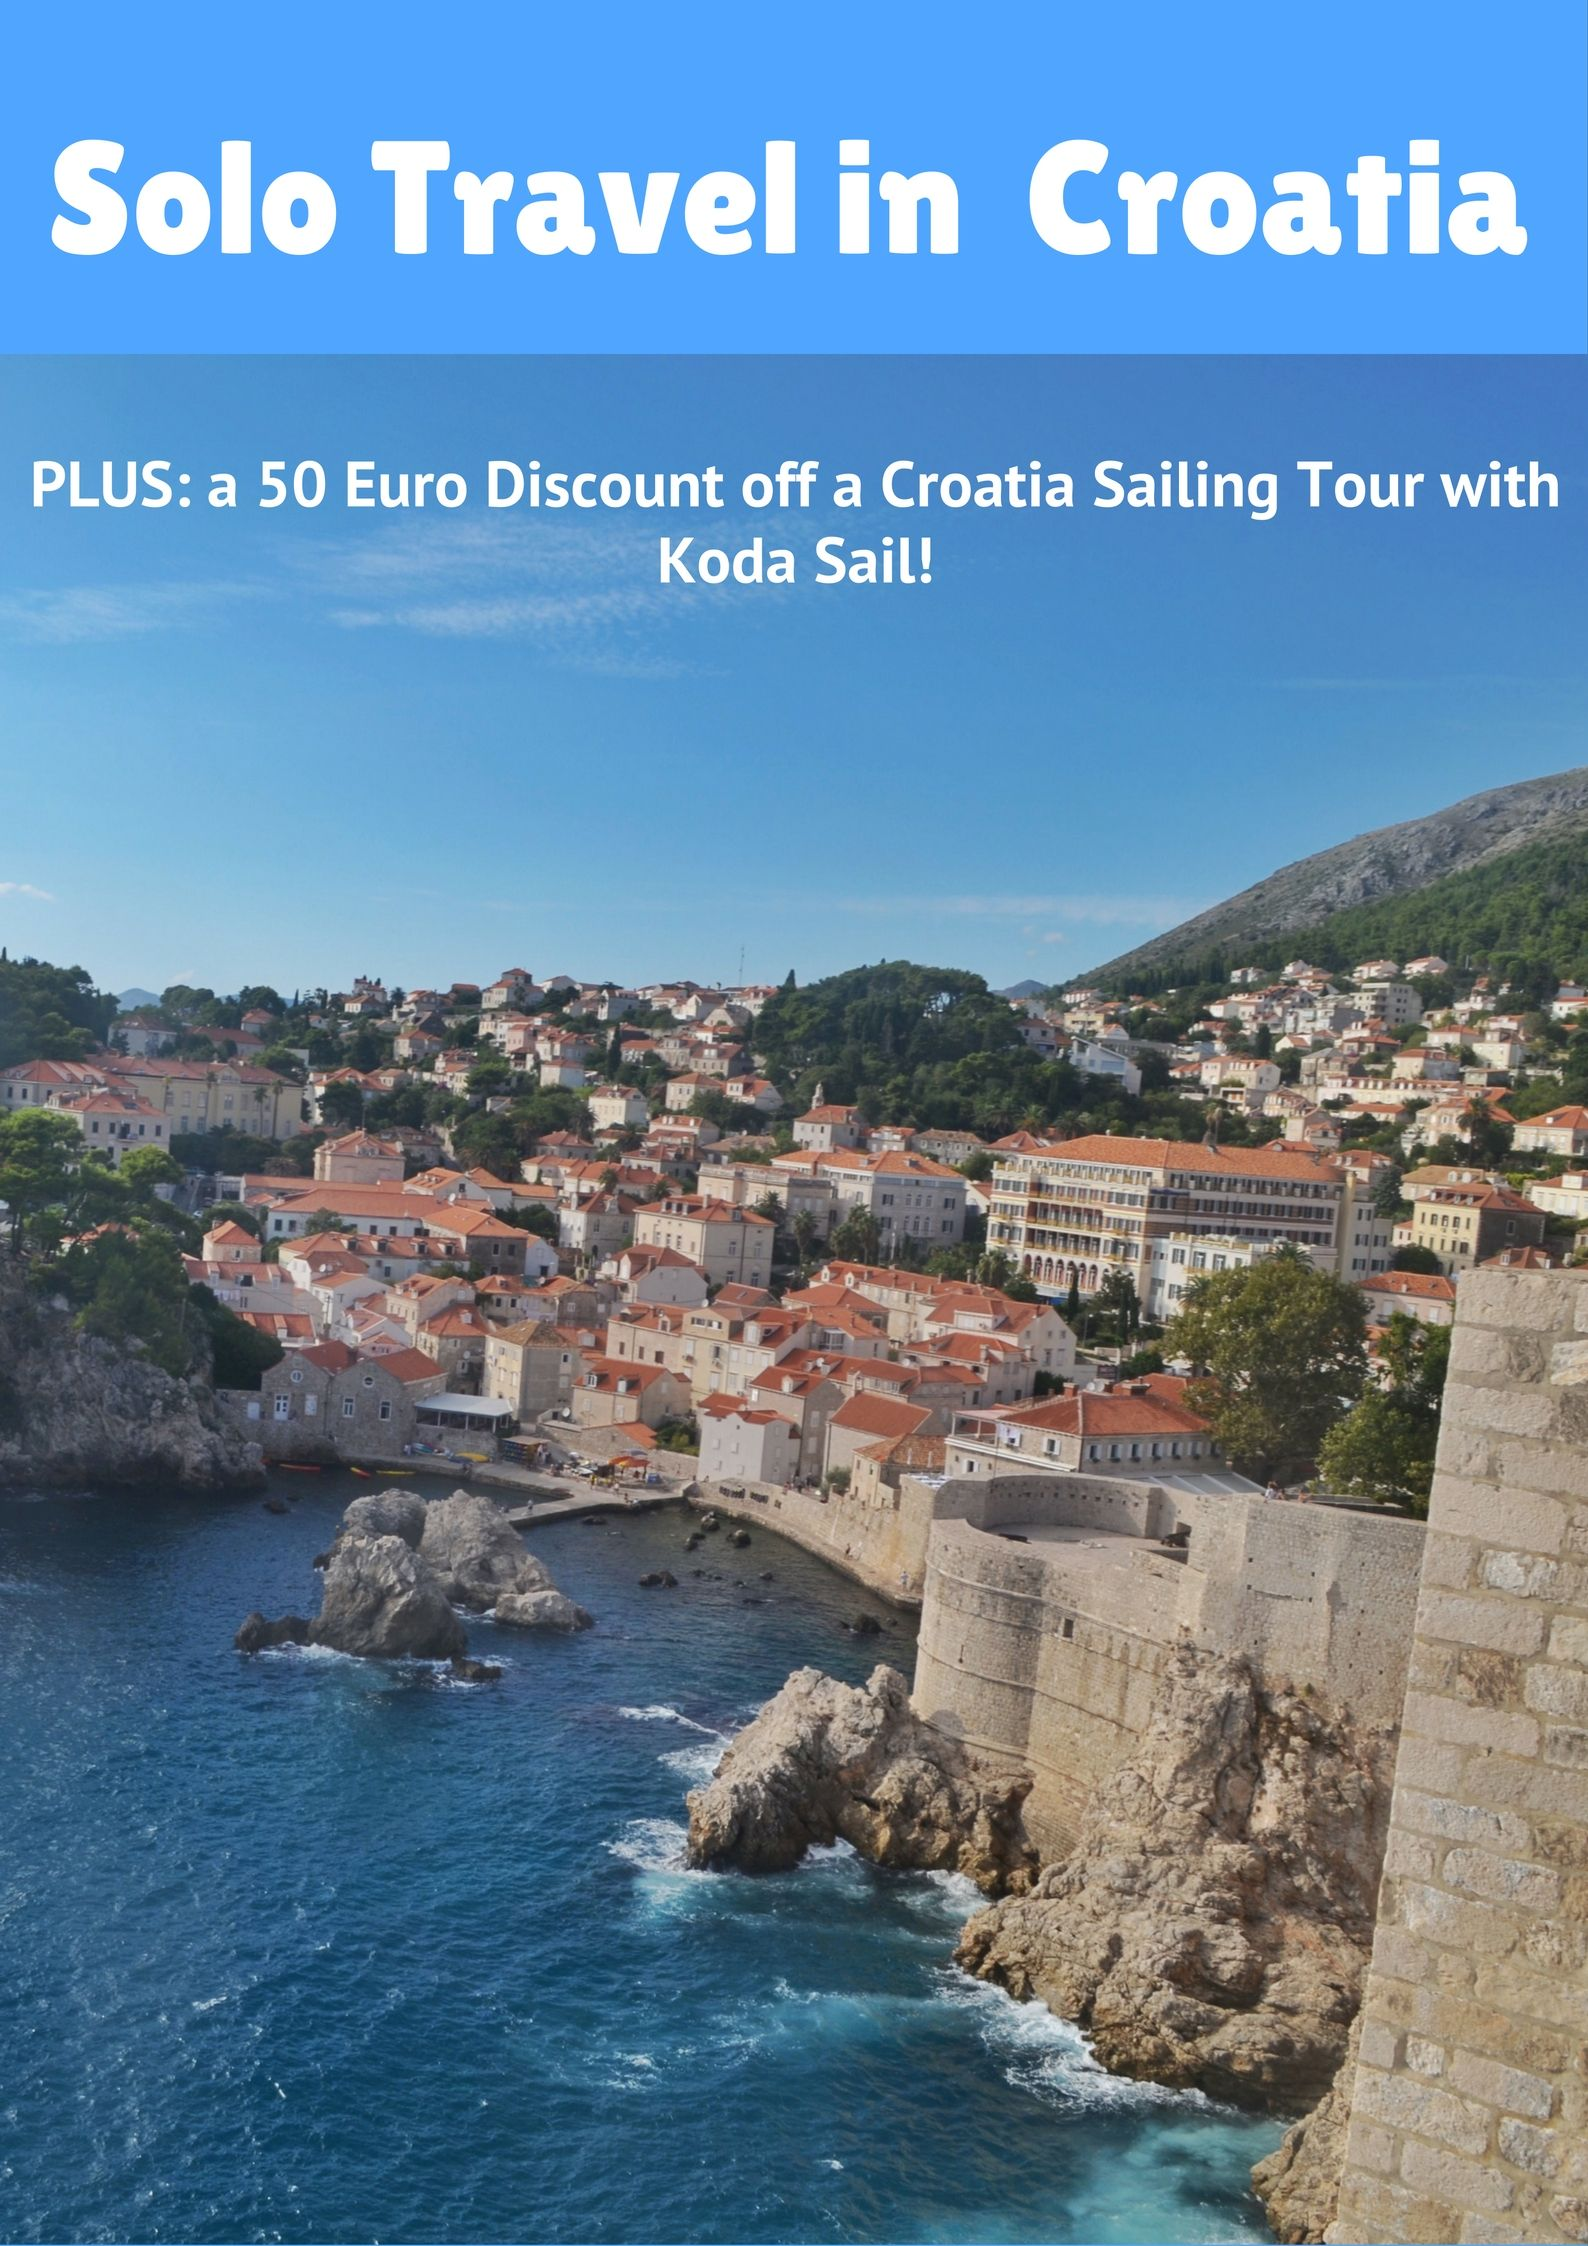 Solo Travel In Croatia: Why I Love And Recommend It